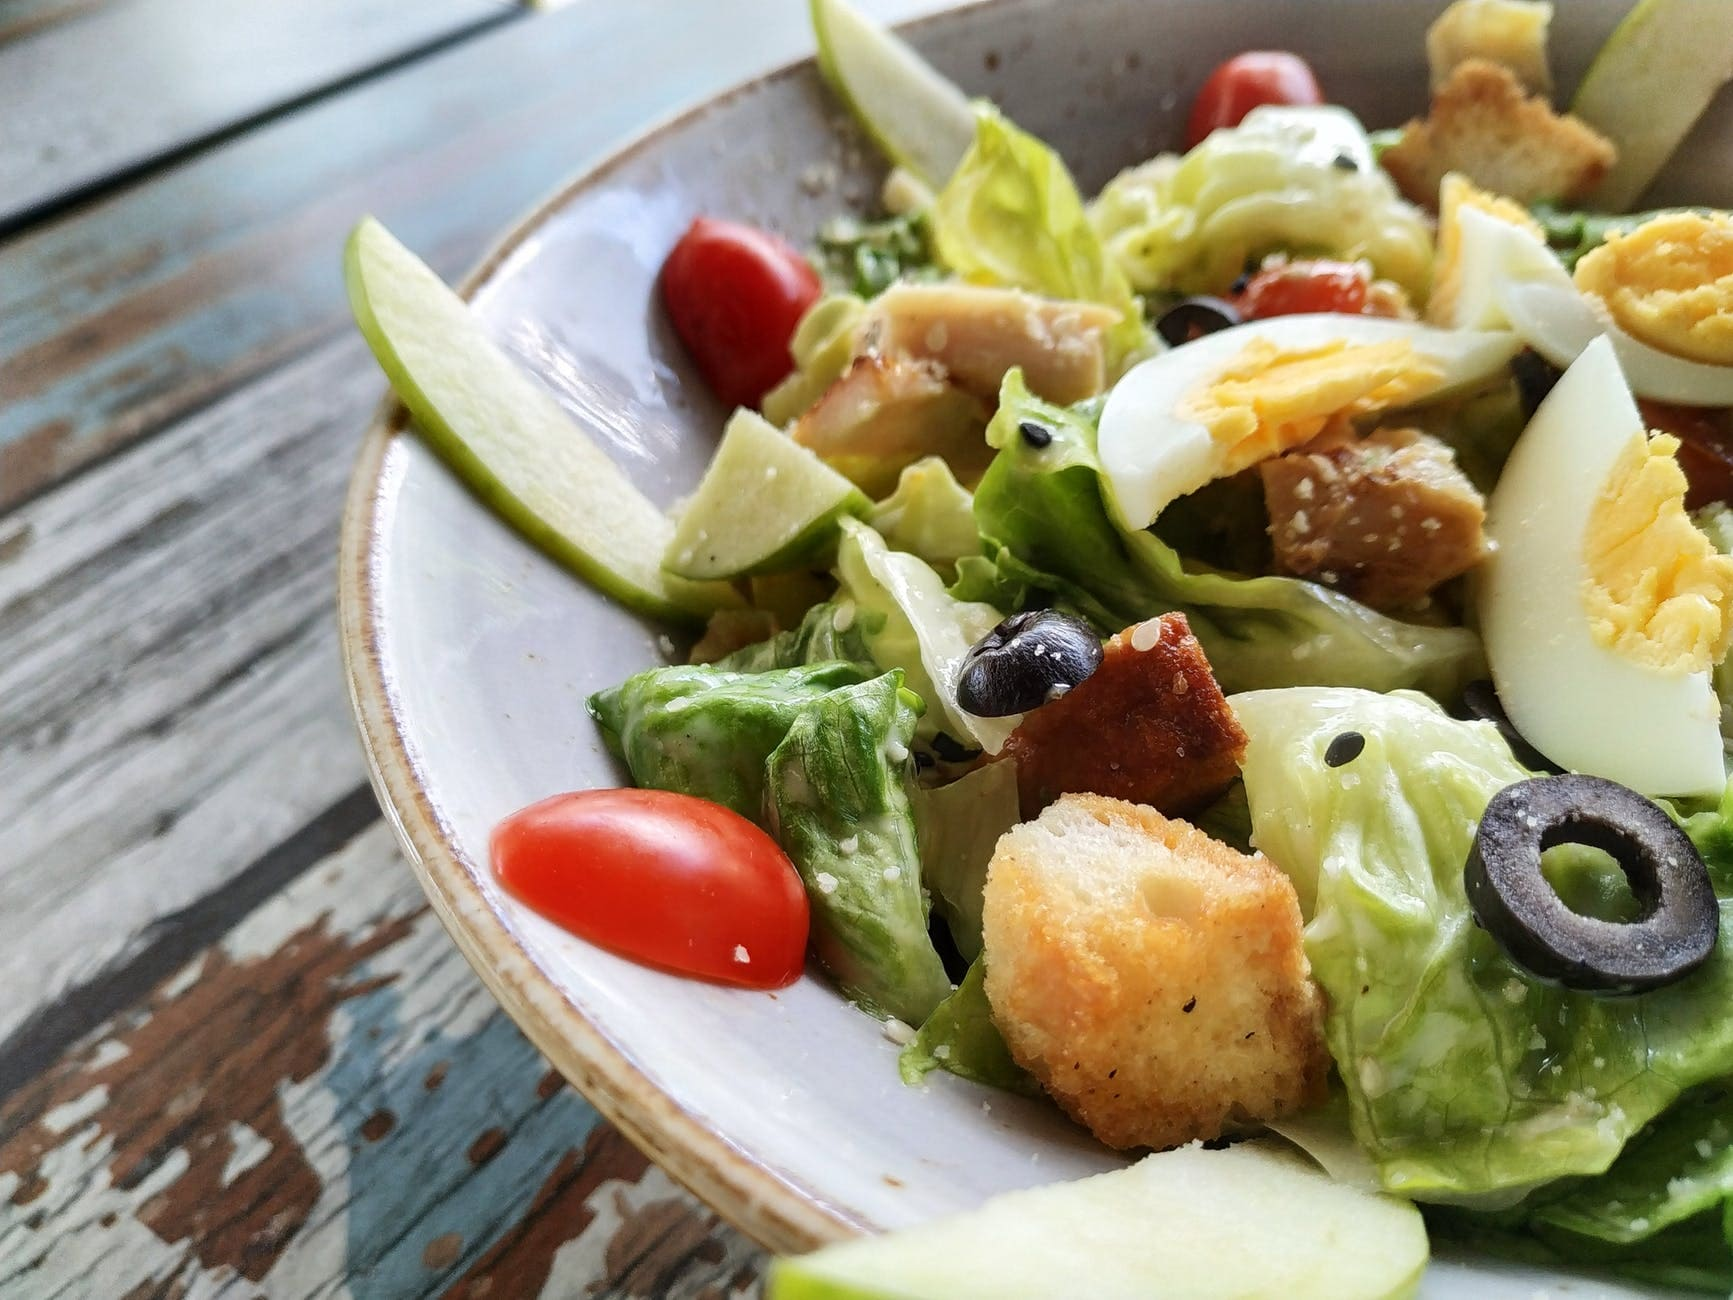 How to make pineapple salad and lettuce